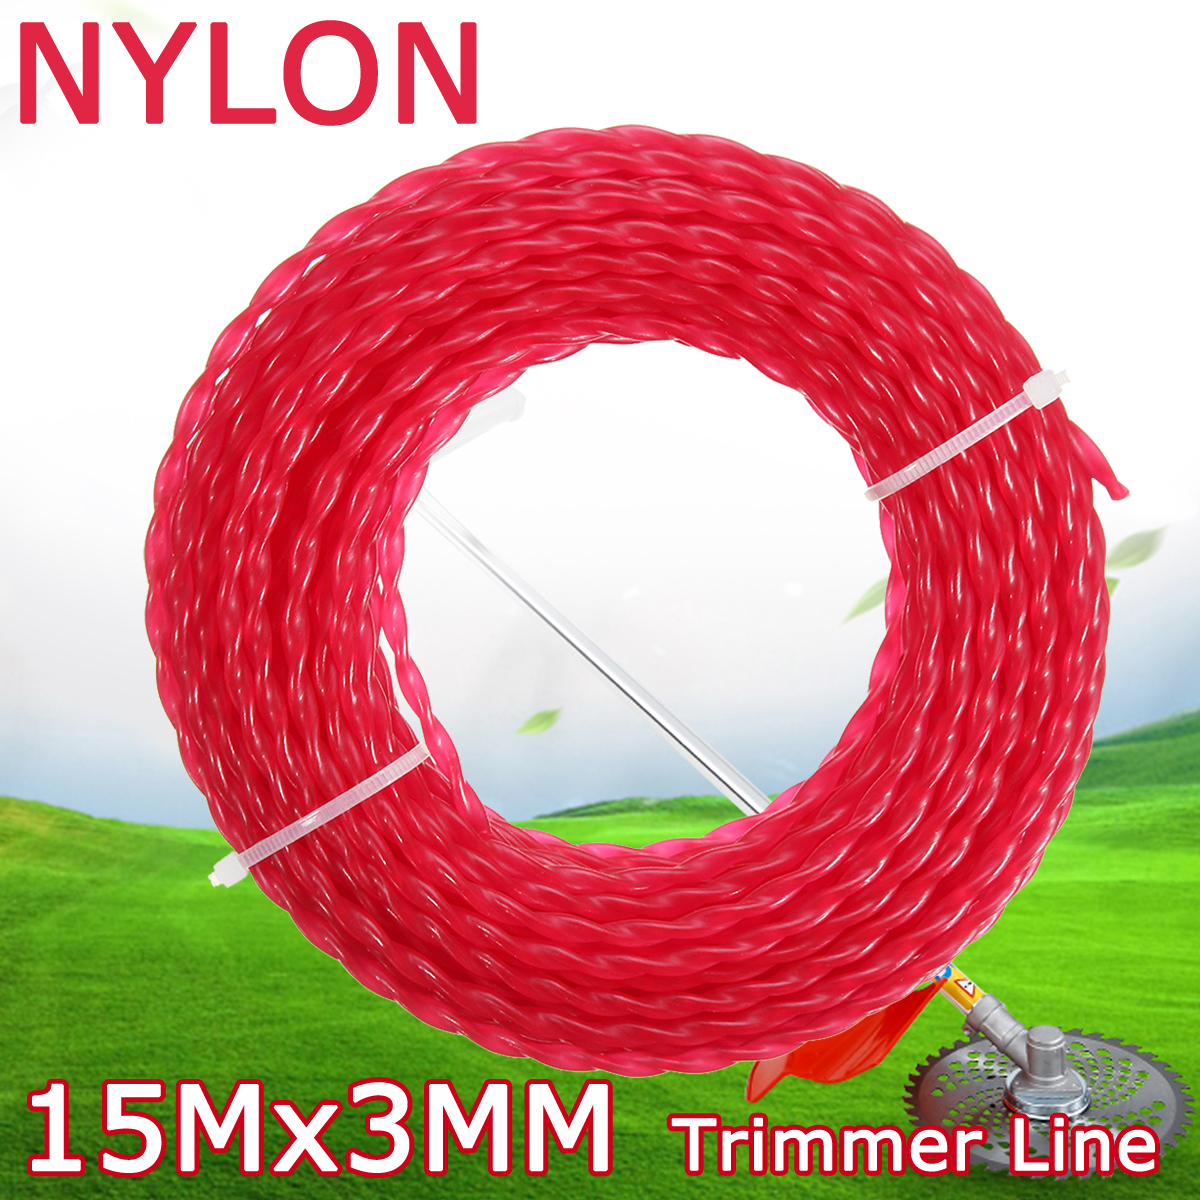 5m x 3mm Nylon Trimmer Line Rope Roll Cord Cable Wire String Grass Strimmer Garden